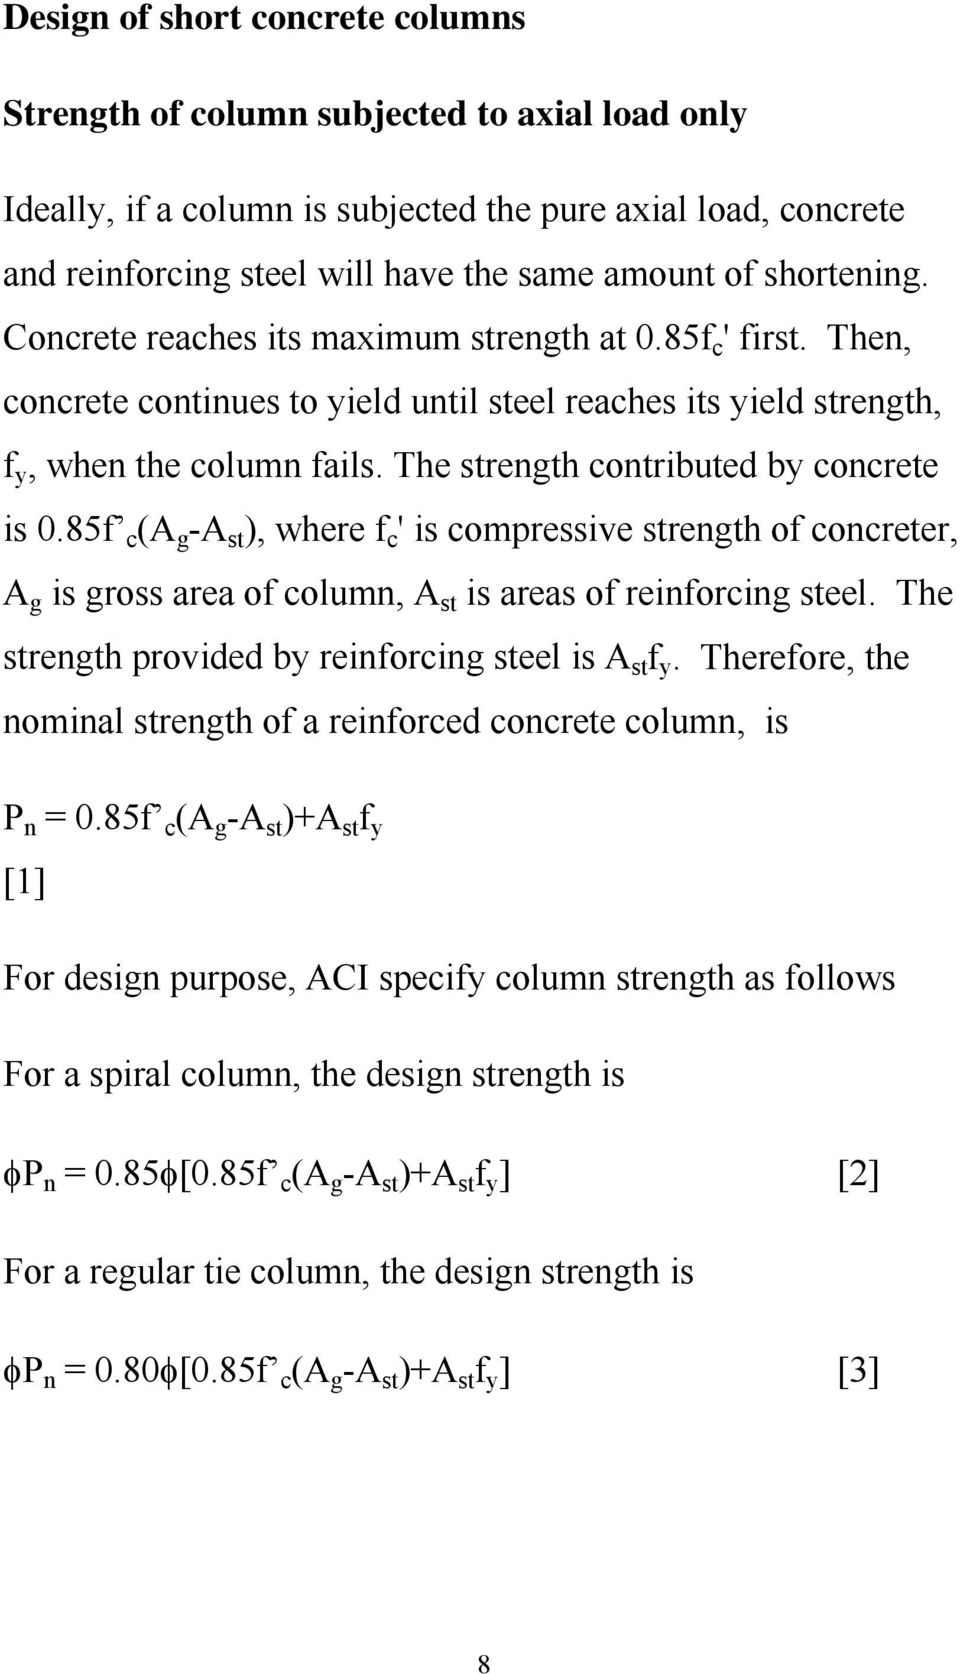 The strength contributed by concrete is 0.85f c (A g -A st ), where f c ' is compressive strength of concreter, A g is gross area of column, A st is areas of reinforcing steel.